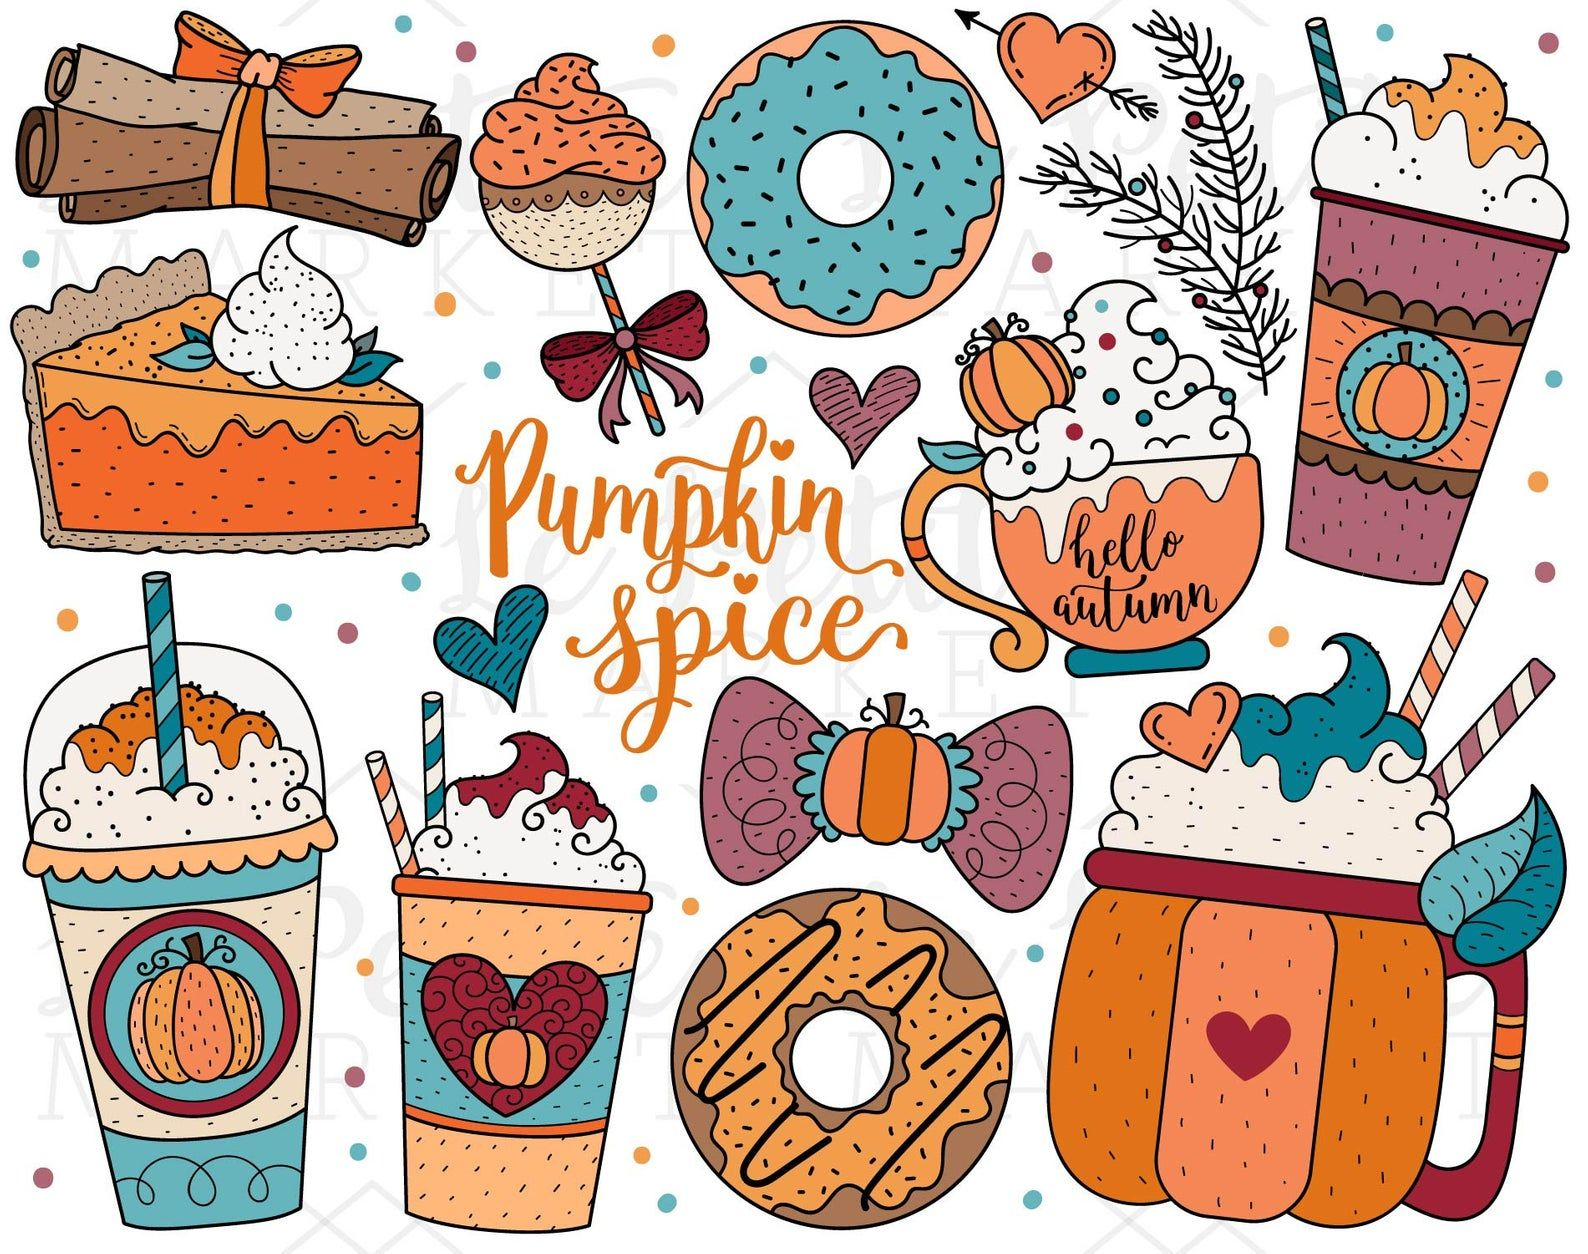 Pumpkin Spice Clipart Images Digital Stamps Autumn Clipart Etsy In 2021 Autumn Stickers Autumn Doodles Fall Wallpaper